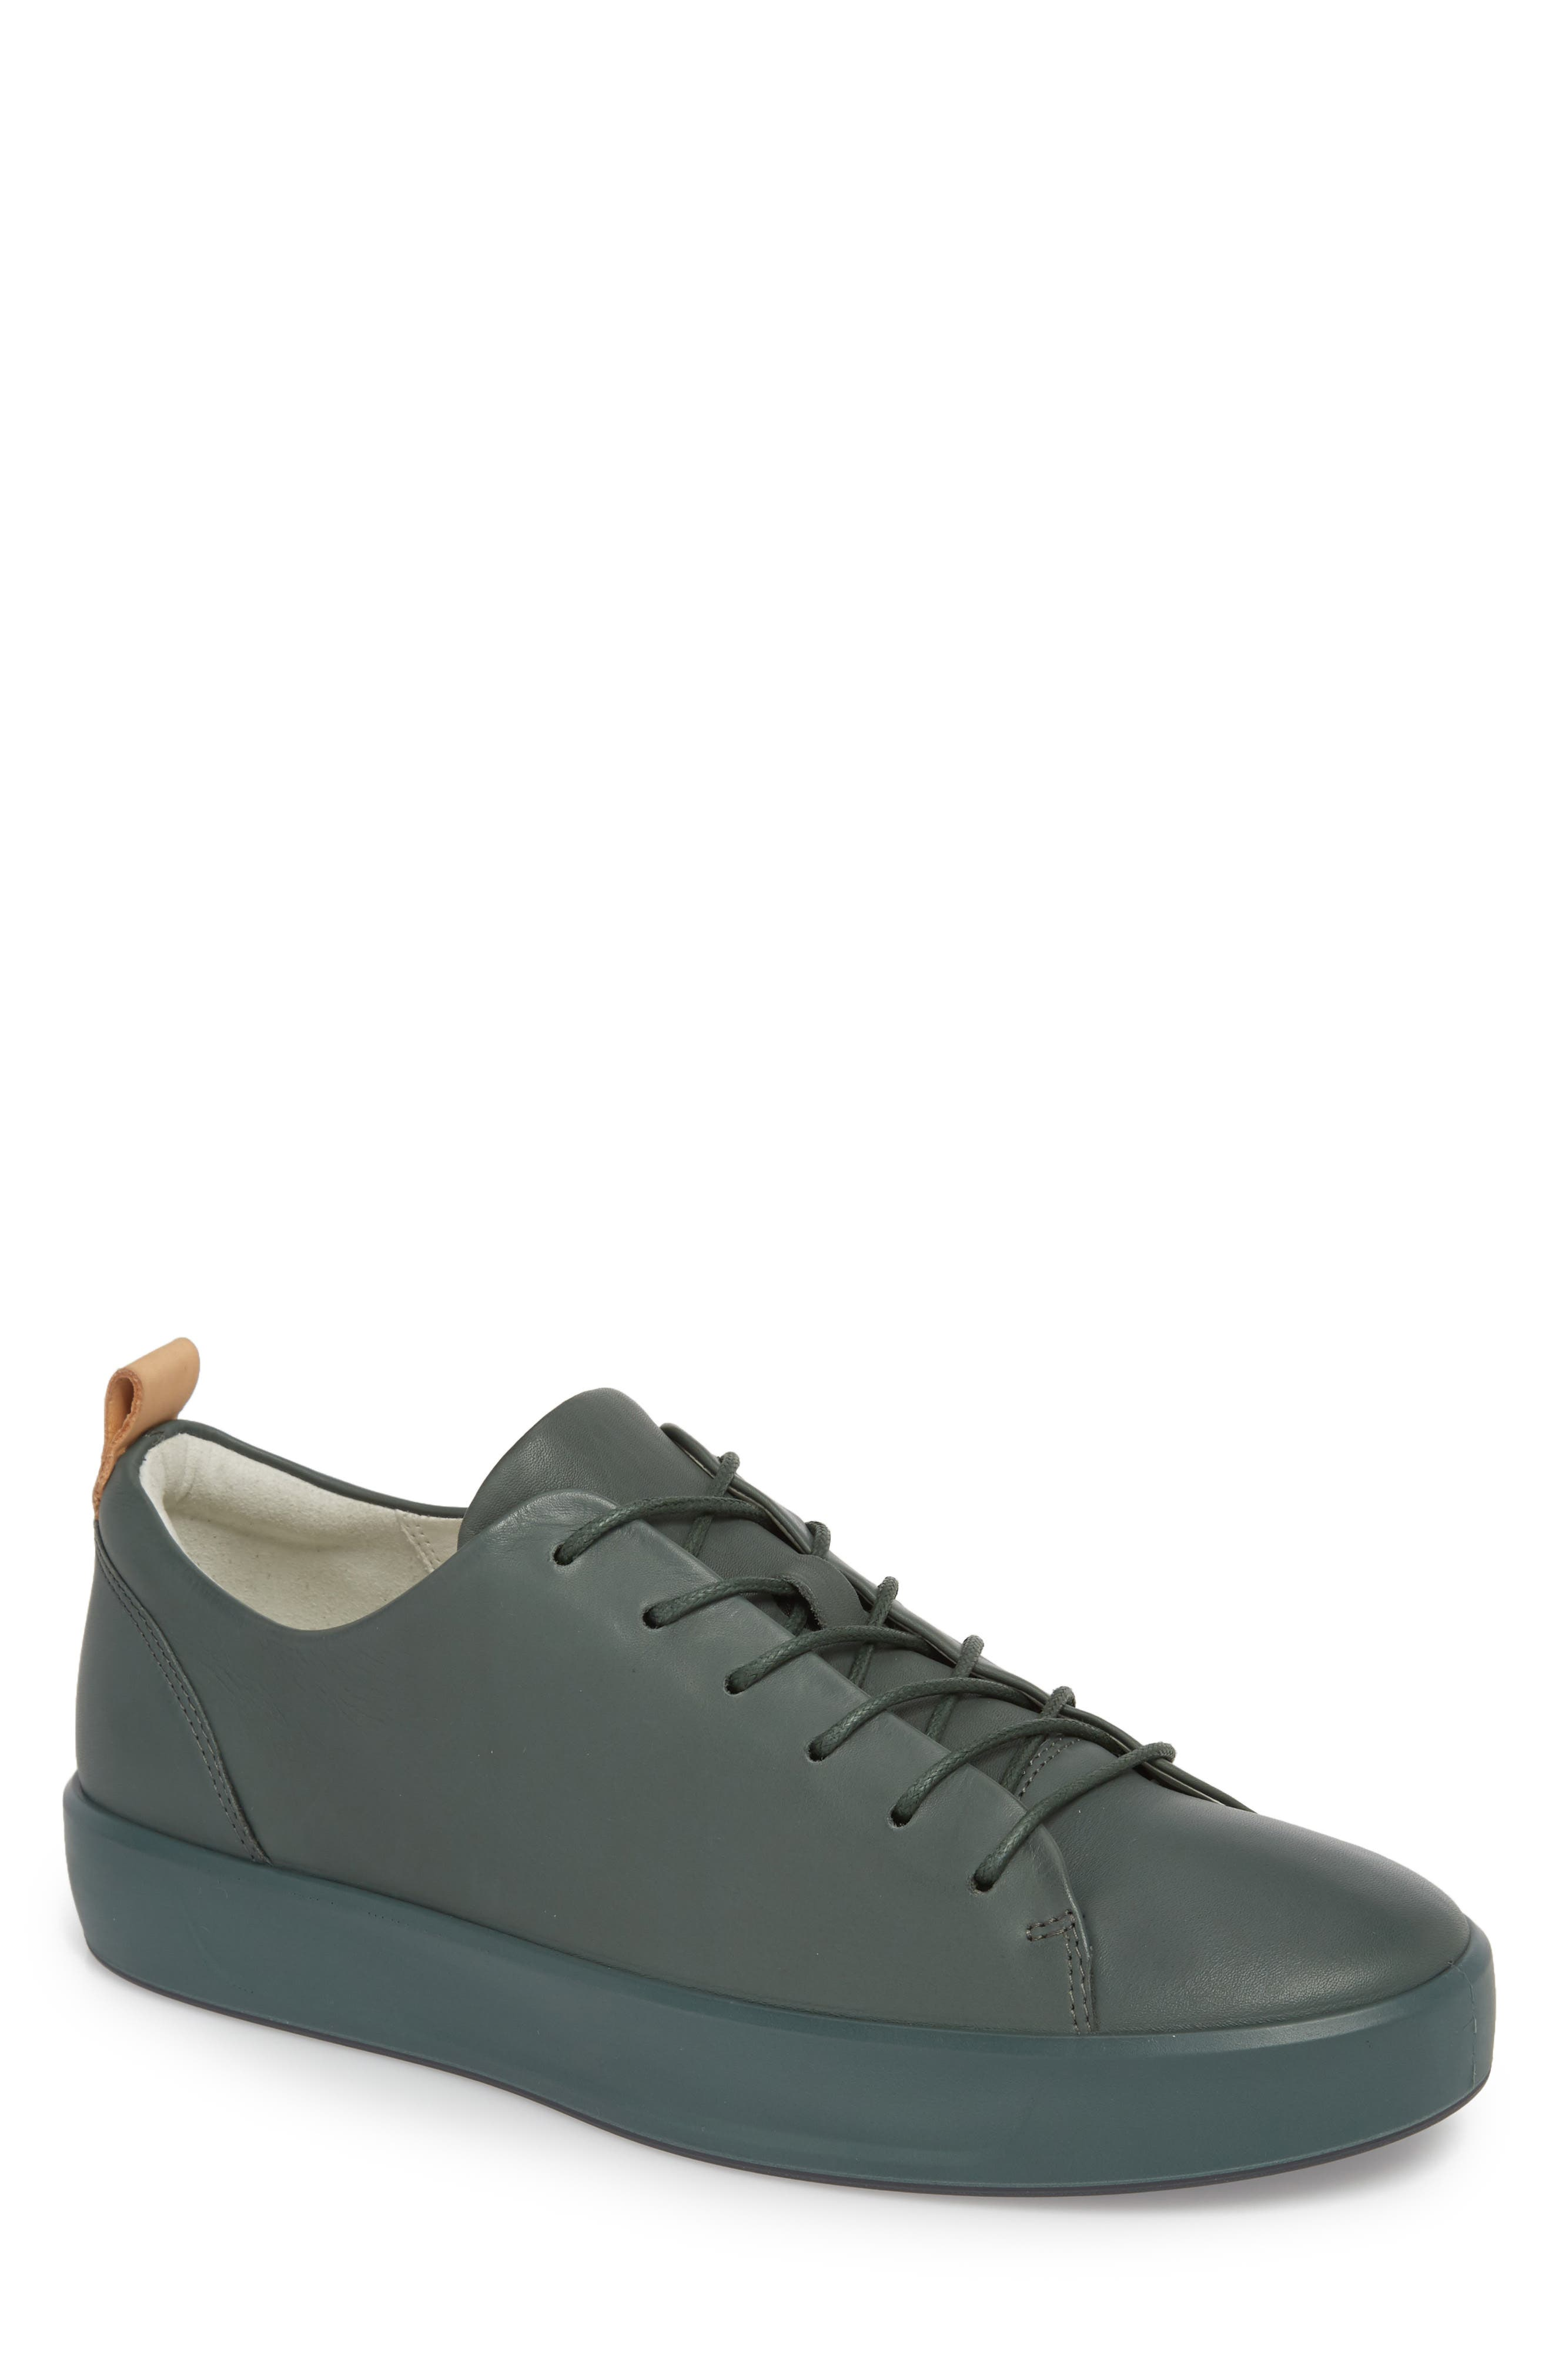 Soft 8 Low Top Sneaker,                             Main thumbnail 1, color,                             Military Sage Leather